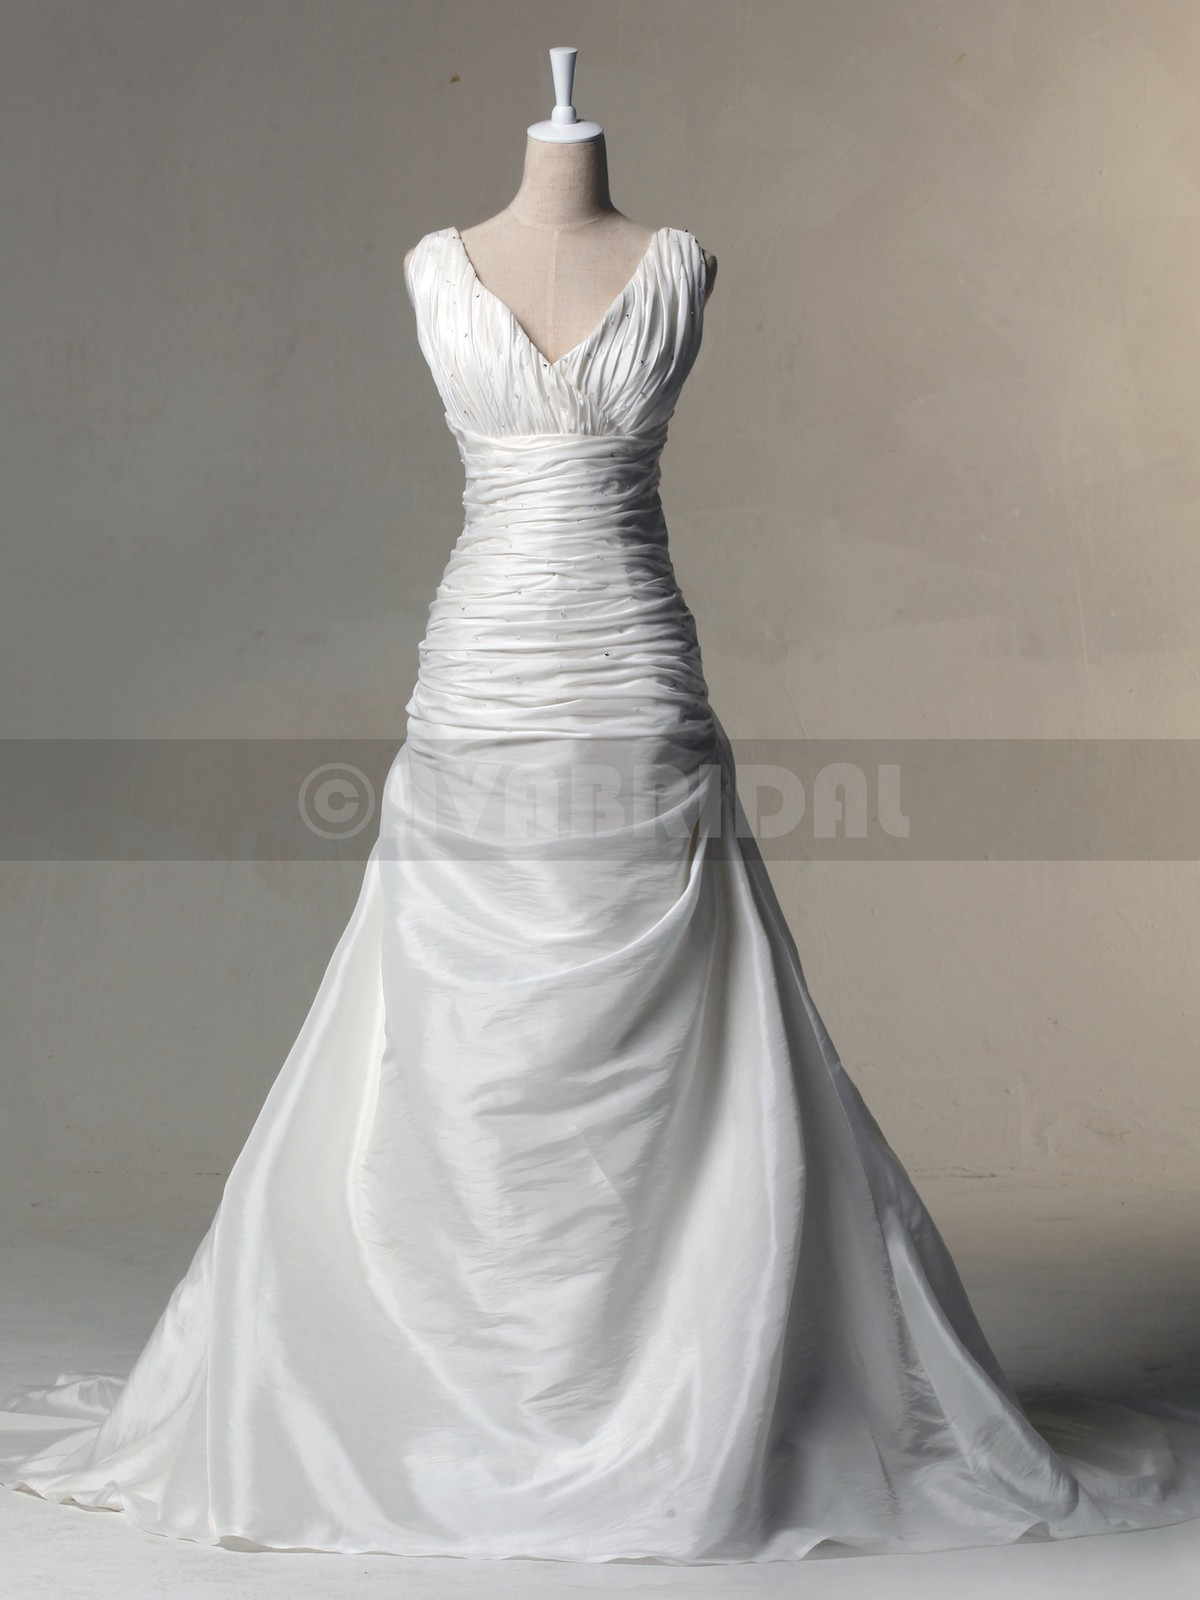 Chic Wedding Gown - Morise - Front